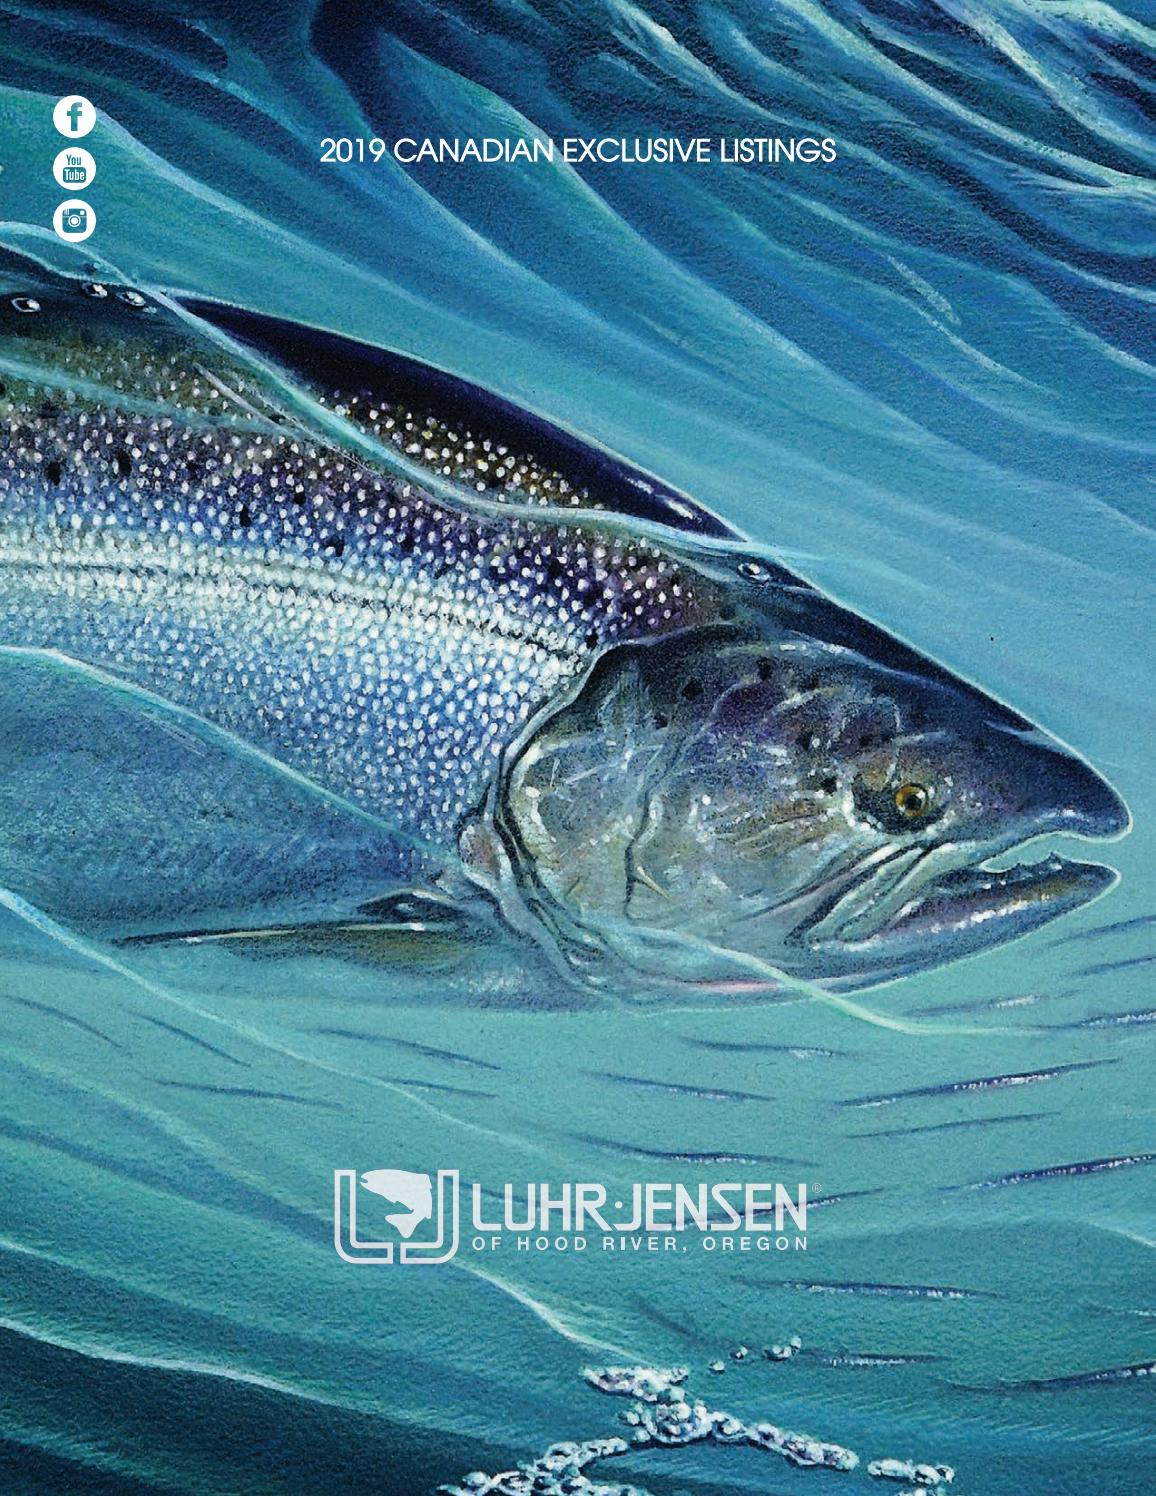 2019 Luhr Jensen Catalog by normarkcanada - issuu